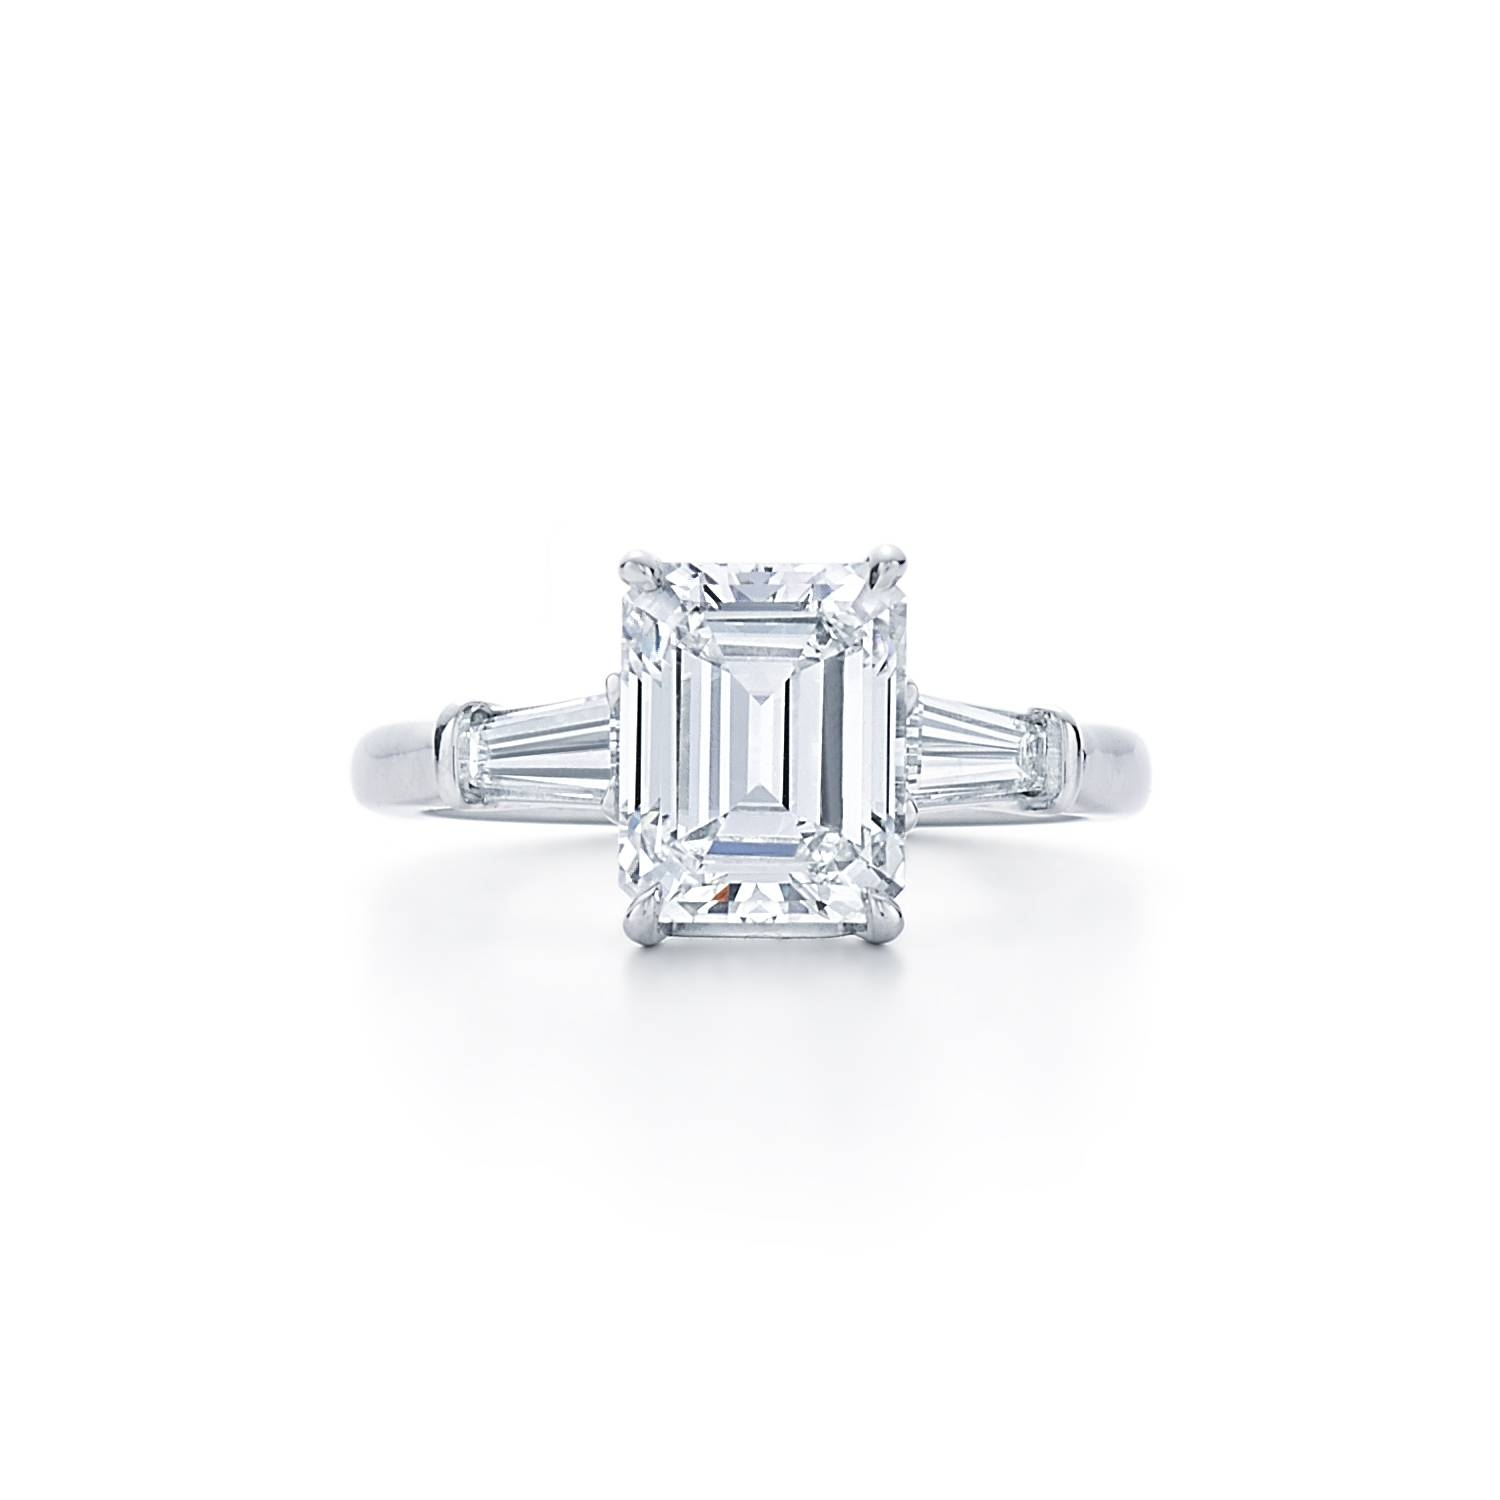 Engagement Rings : Antique Vintage Engagement Rings Stunning Throughout Emerald Cut Engagement Rings Baguettes (View 9 of 15)